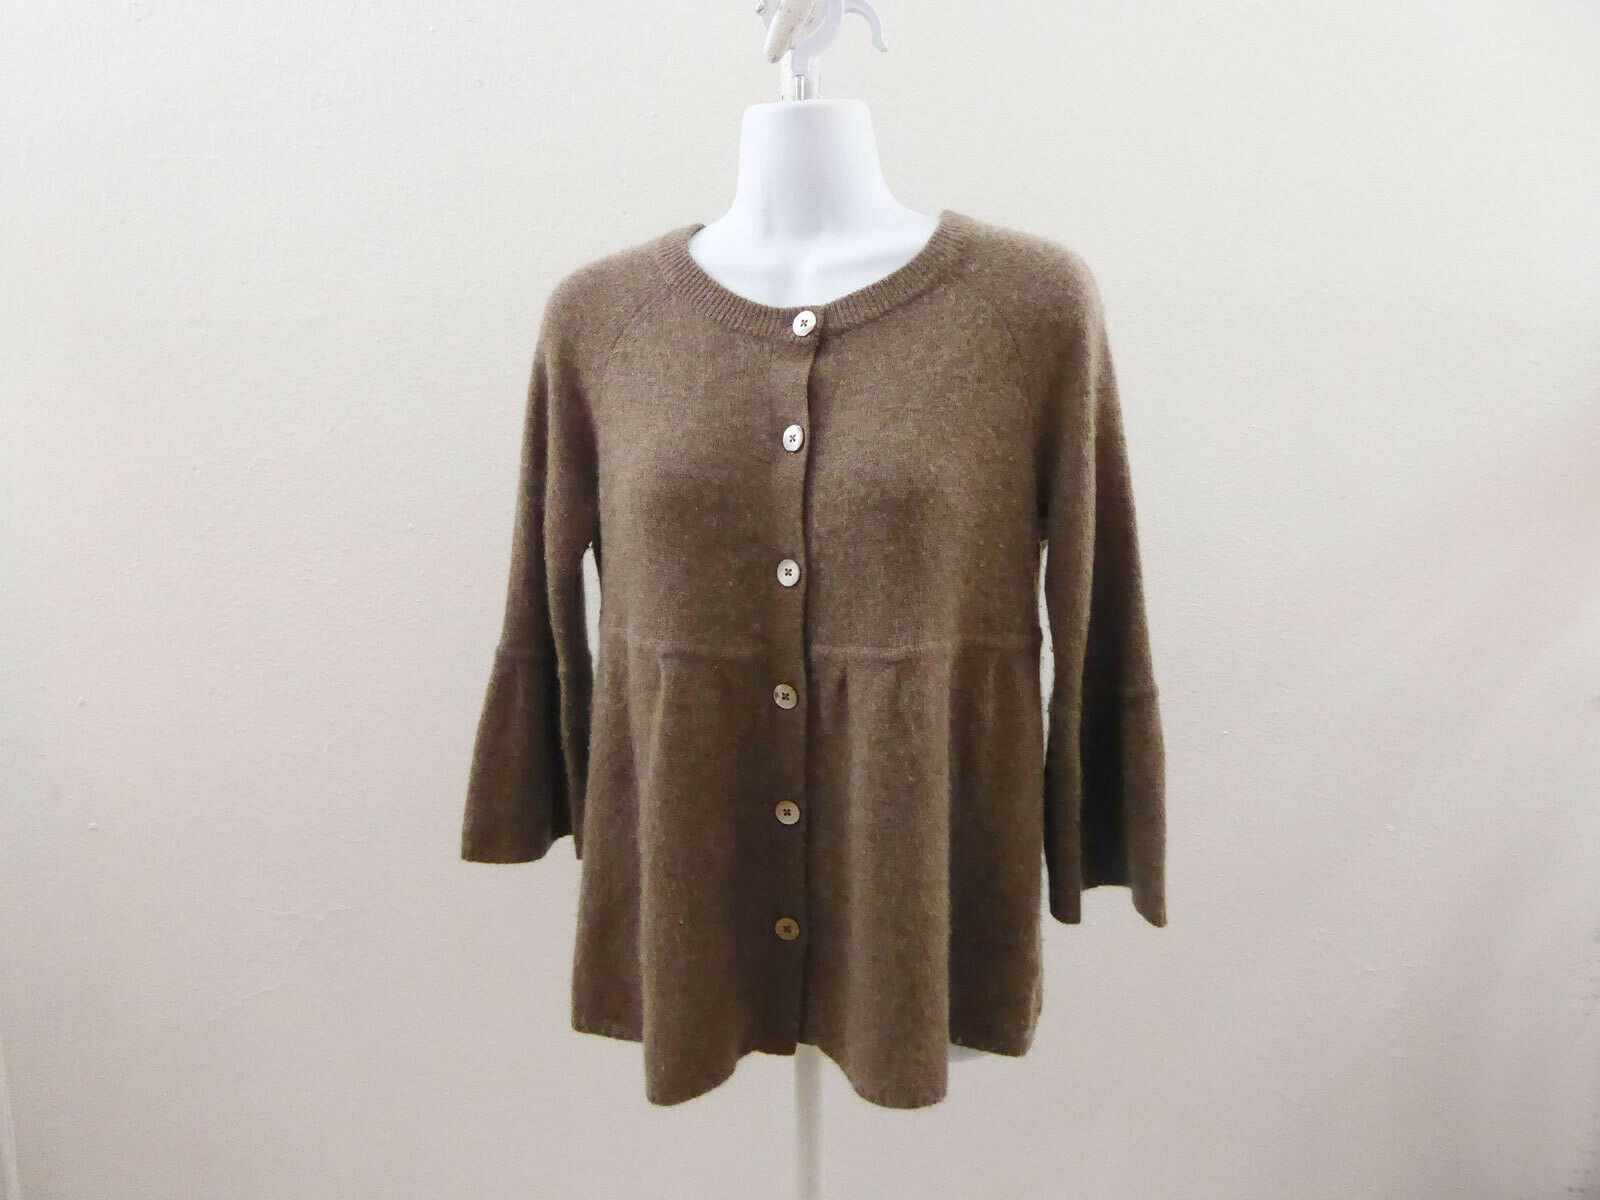 100% Cashmere Sweater Size M Brown Peplum Cardigan Womens Potion 36 Chest